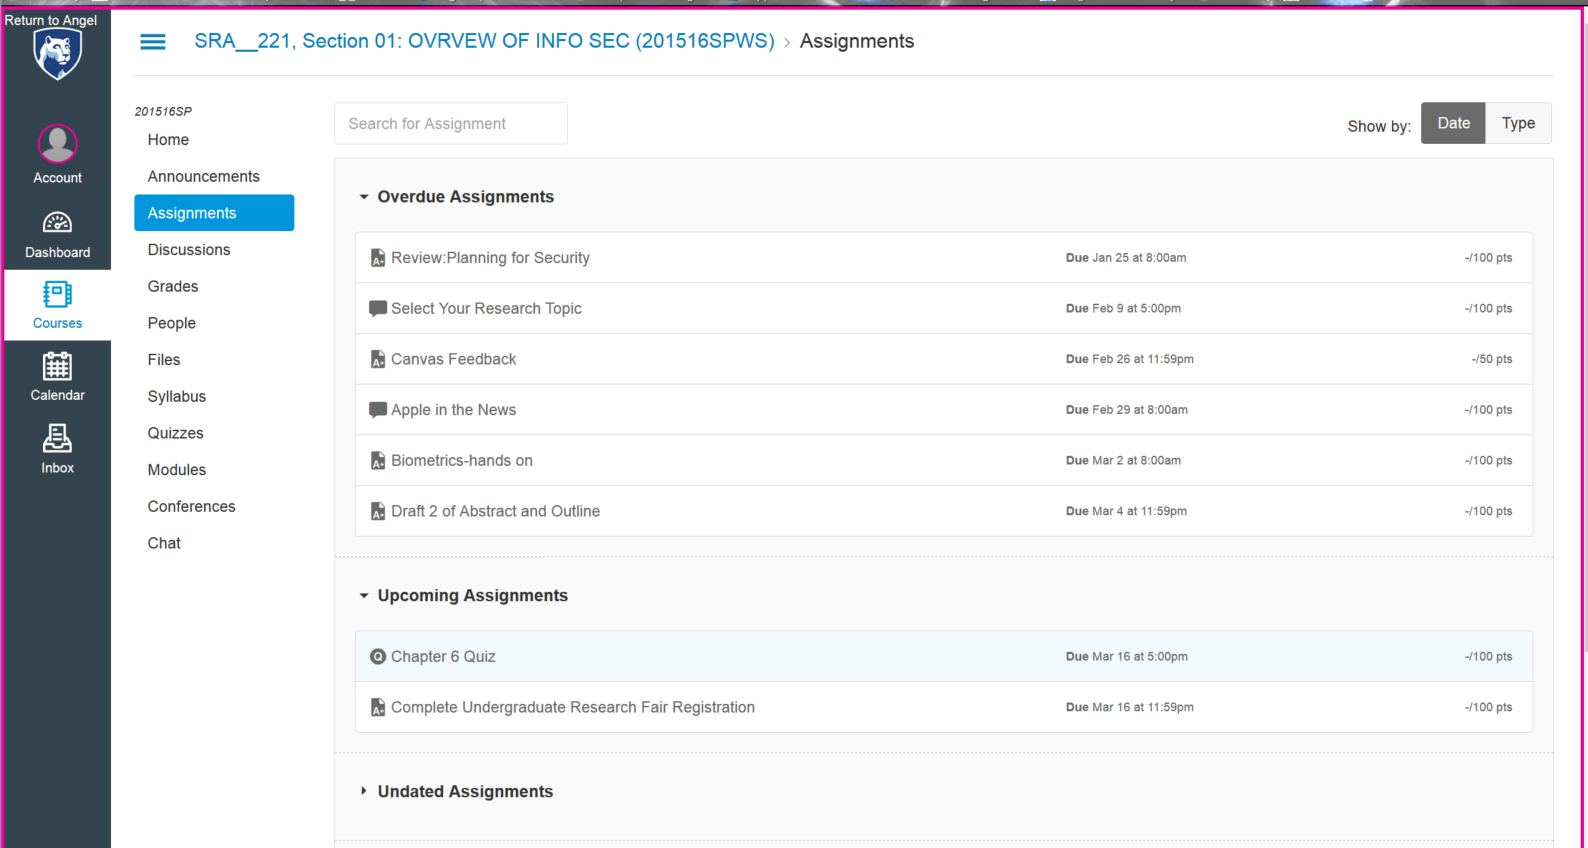 image -- screen shot of assignments sorted by date